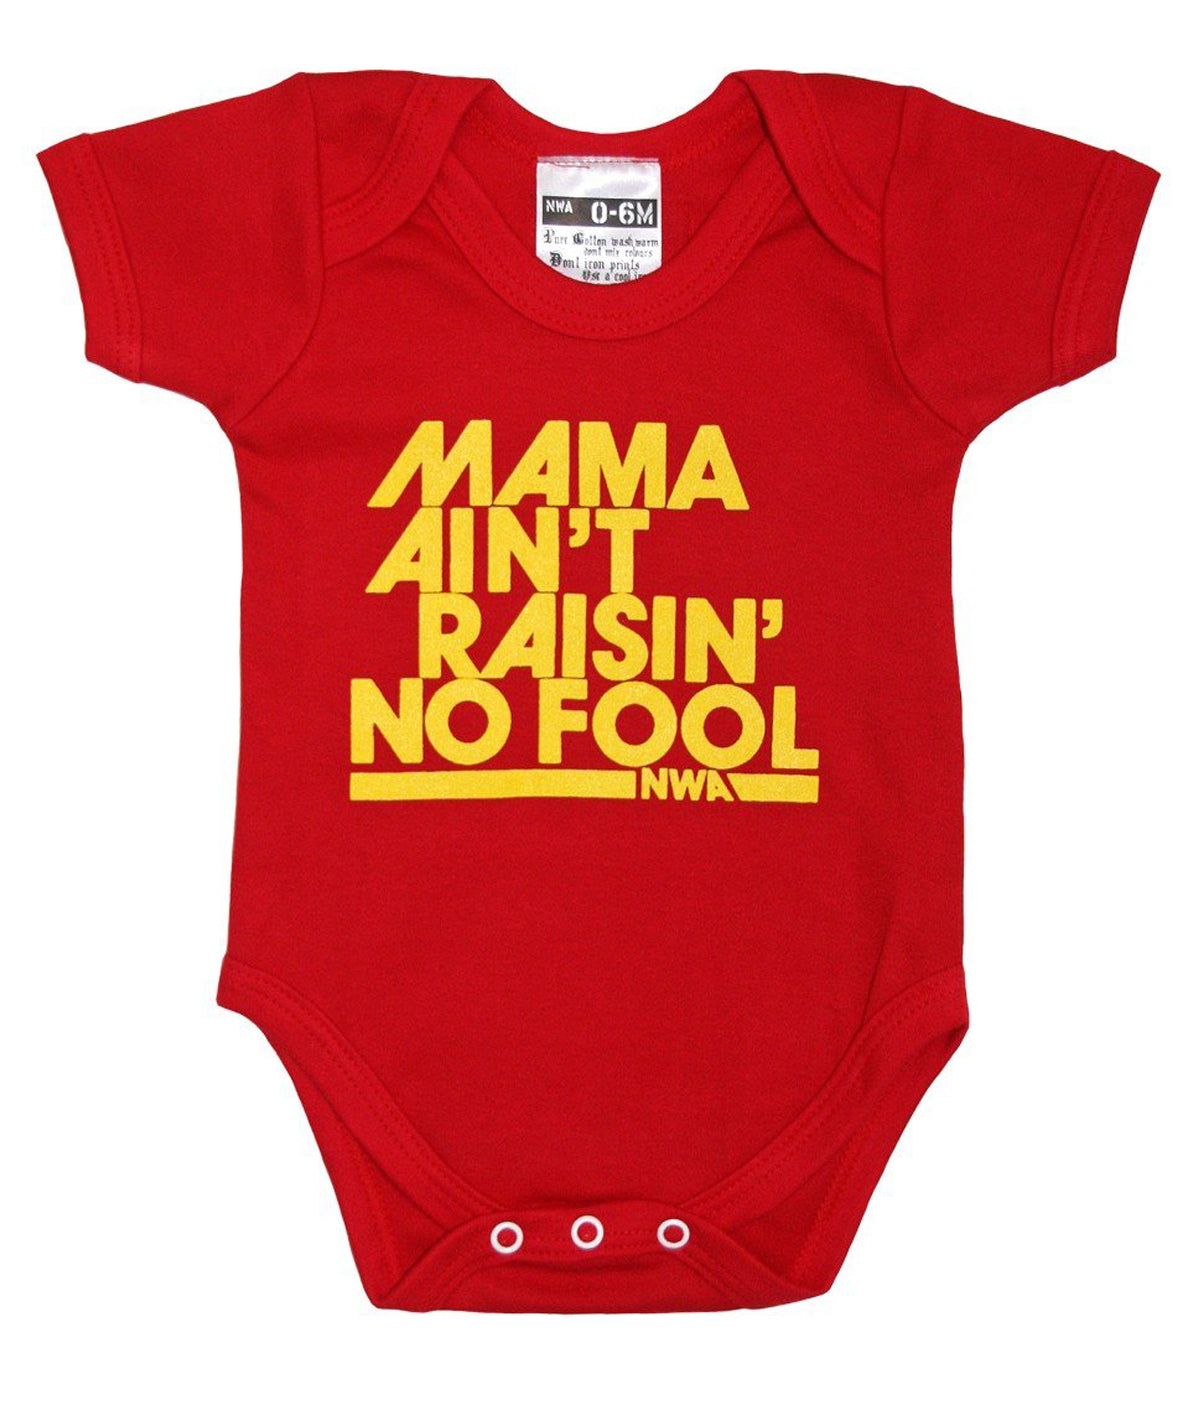 MAMA AIN'T RAISIN NO FOOL RED BABYGROW